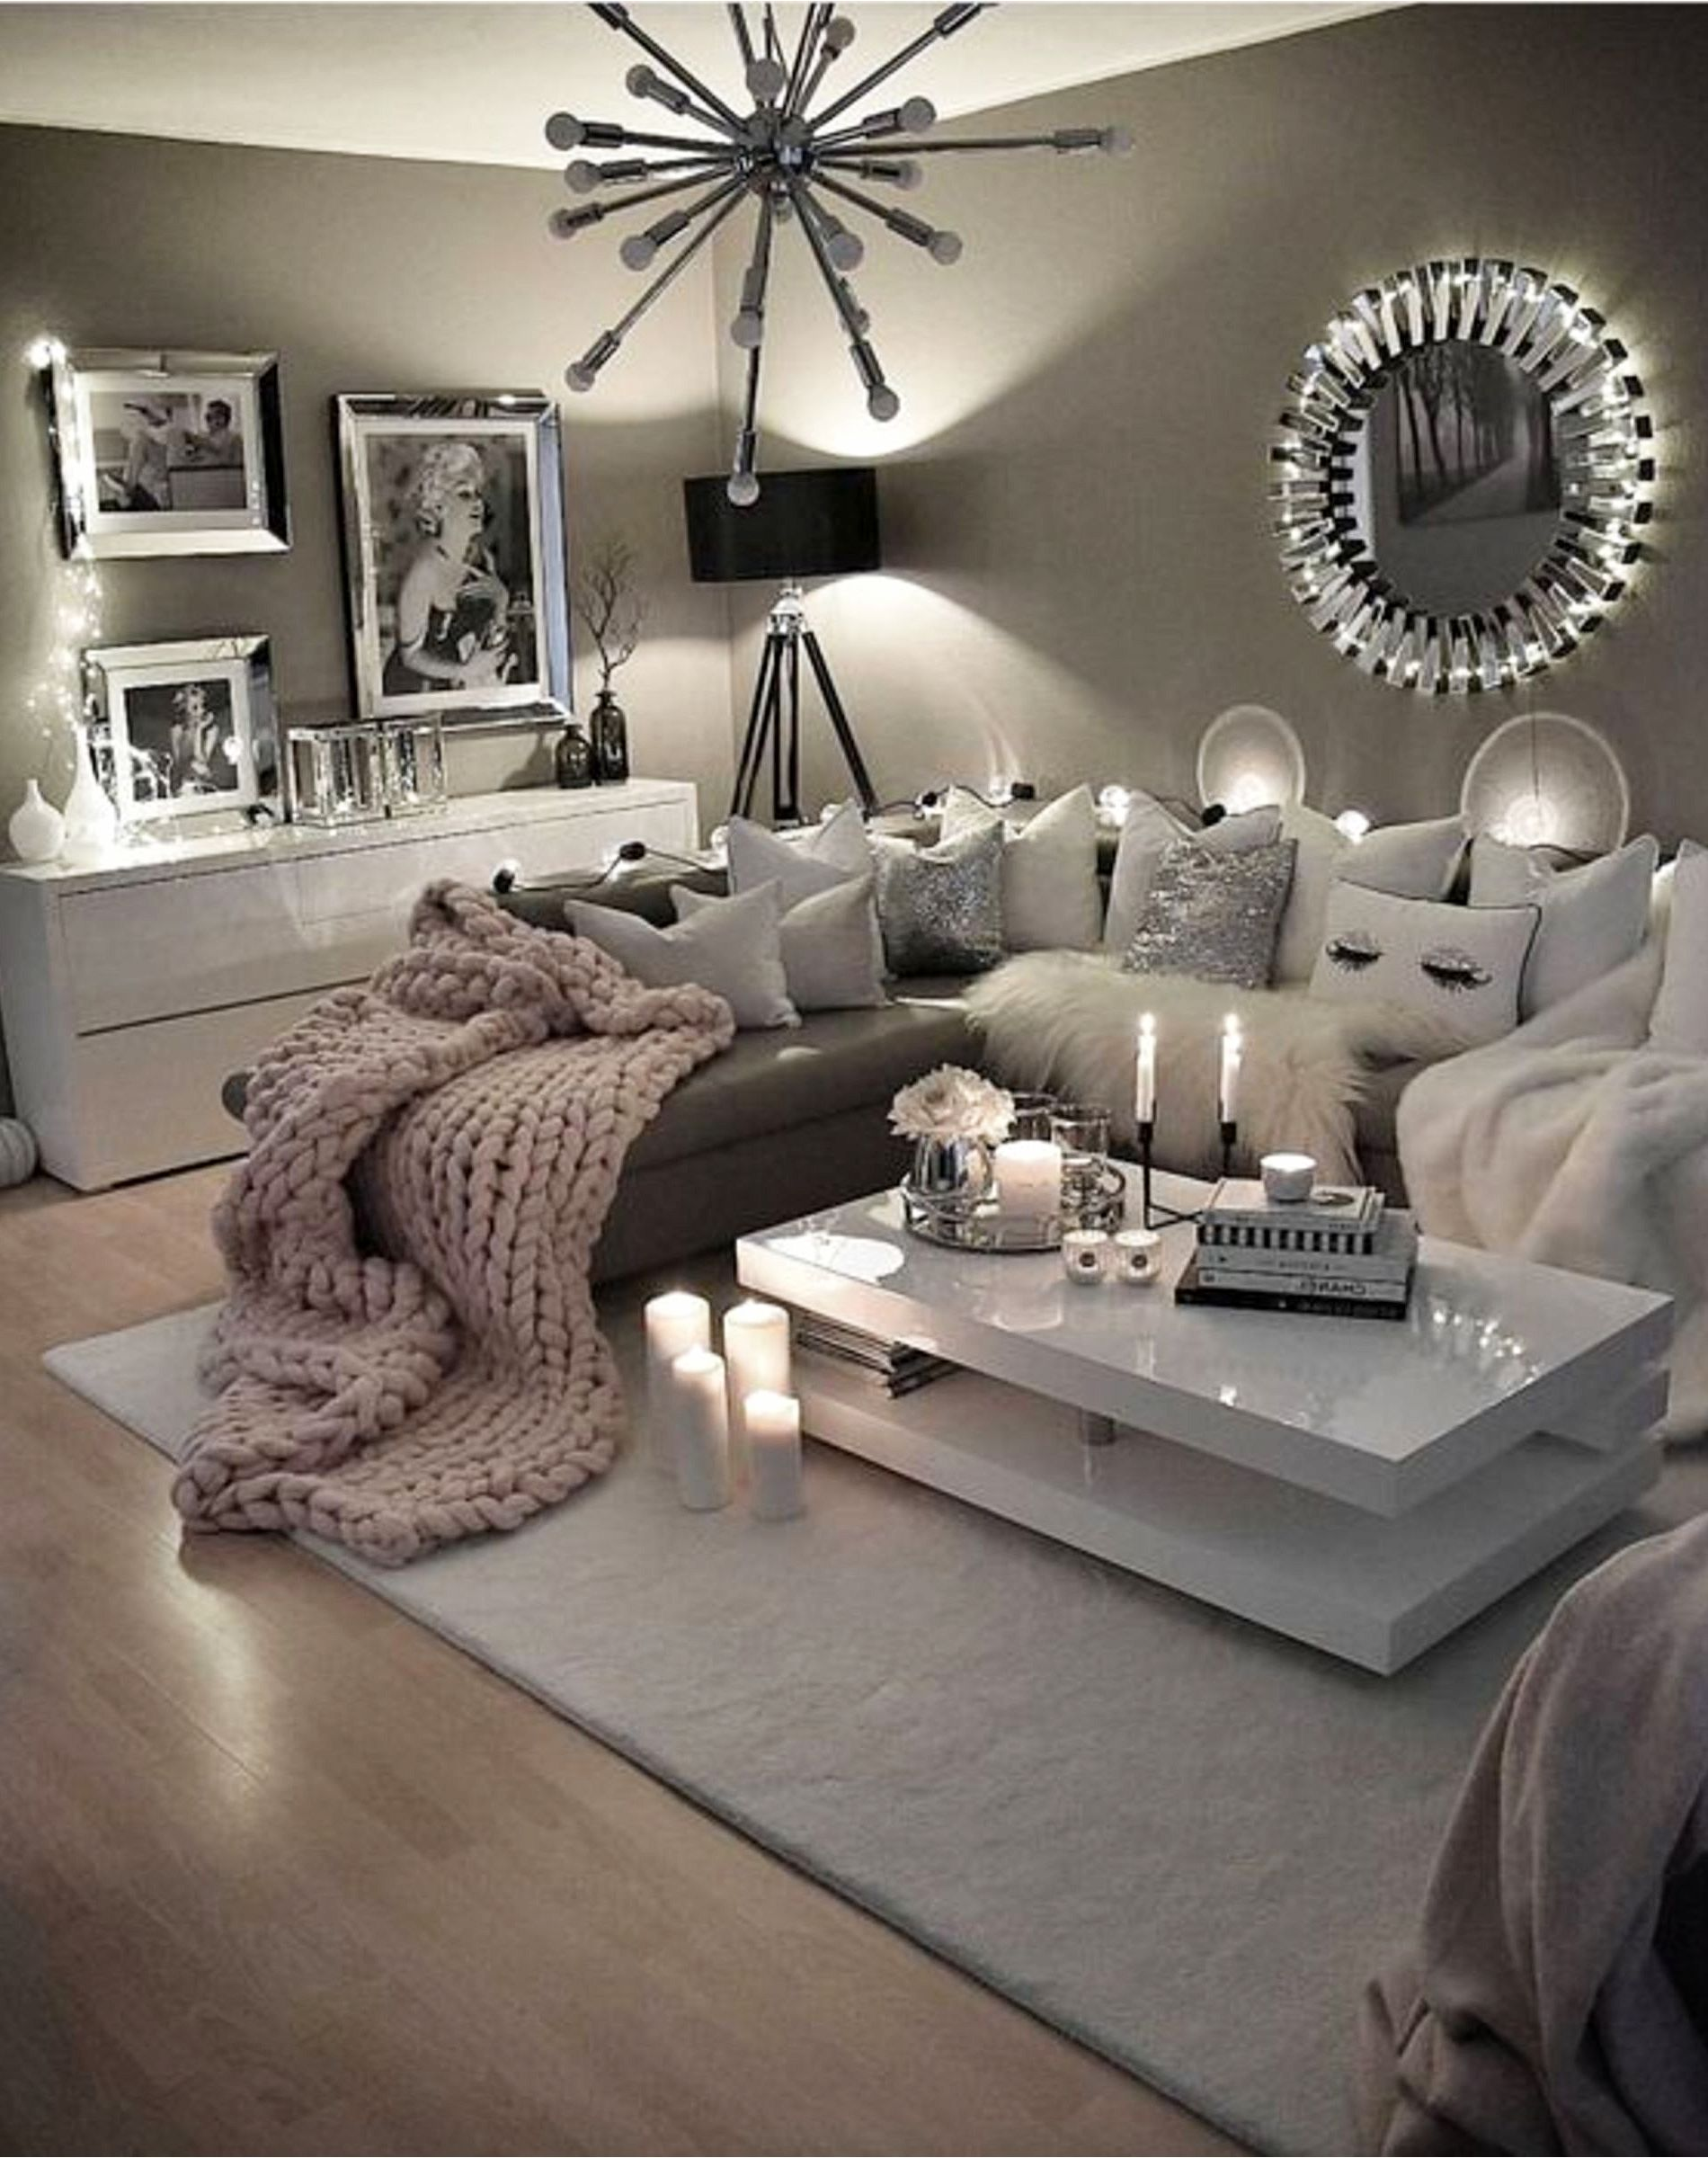 Cozy neutral living room ideas earthy gray living rooms - Decorating living room ideas pinterest ...